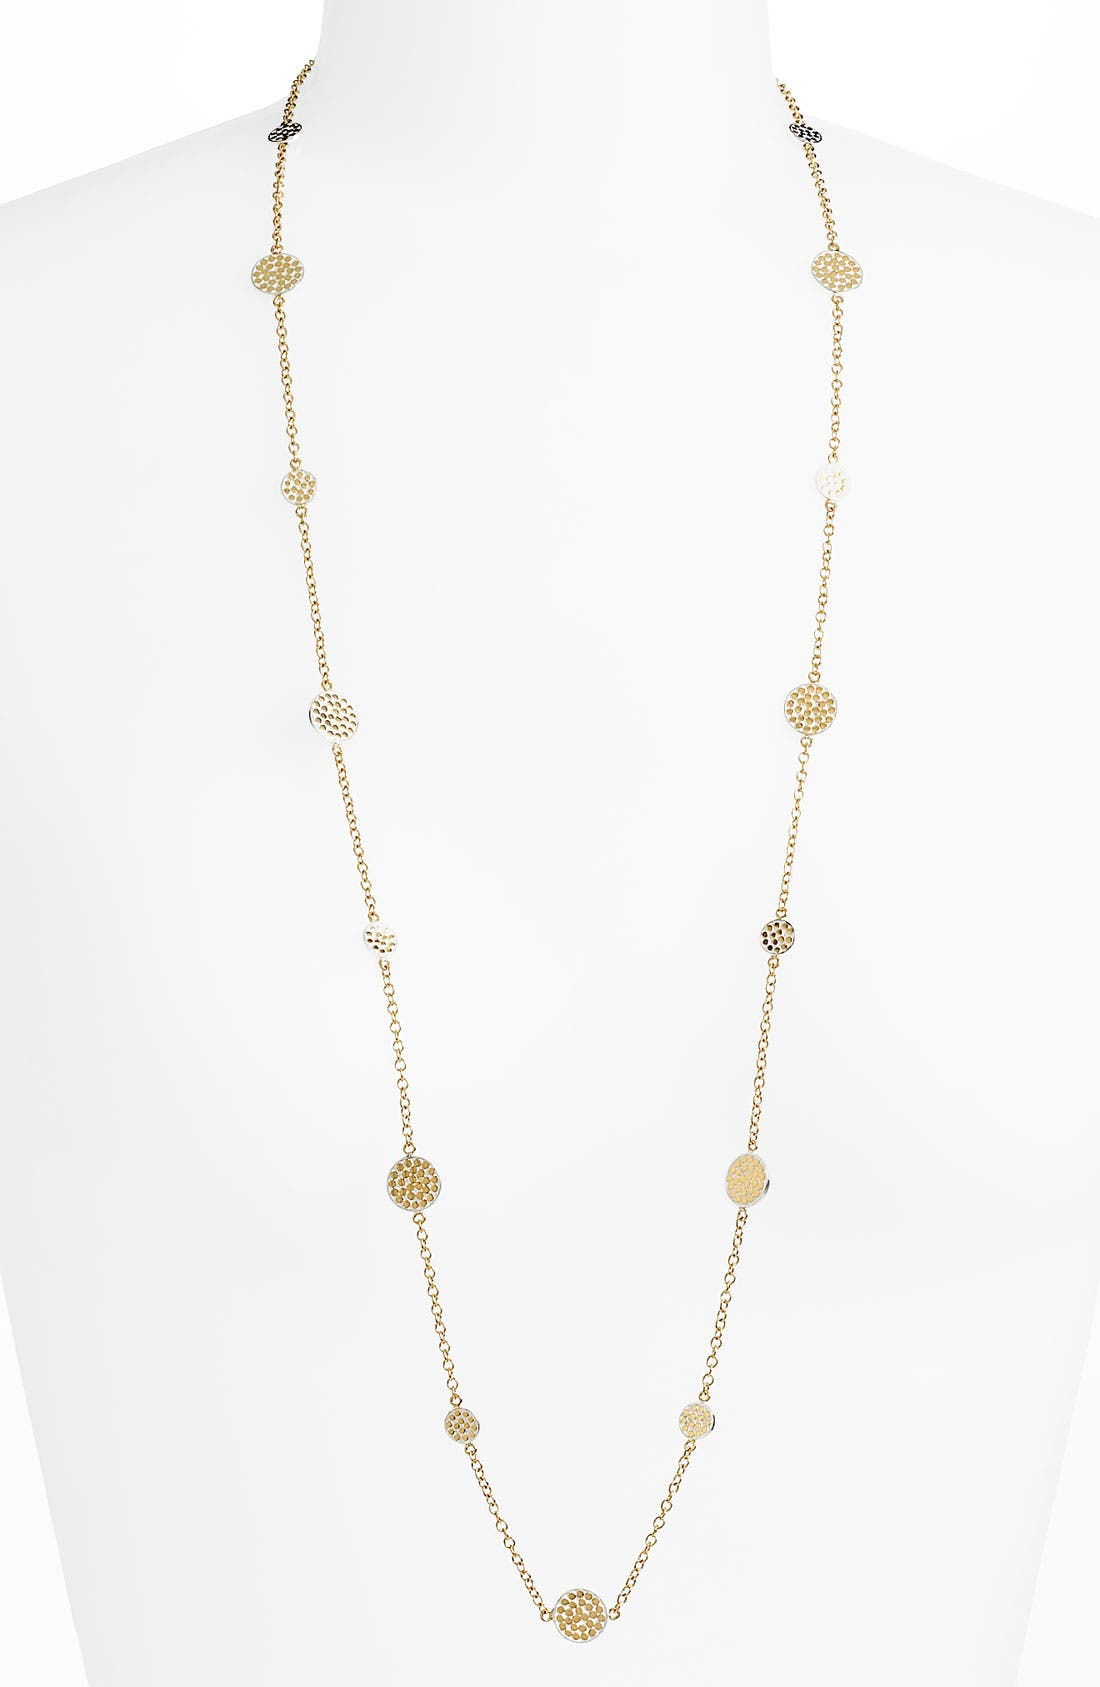 Alternate Image 1 Selected - Anna Beck 'Bali' Long Strand Disc Necklace